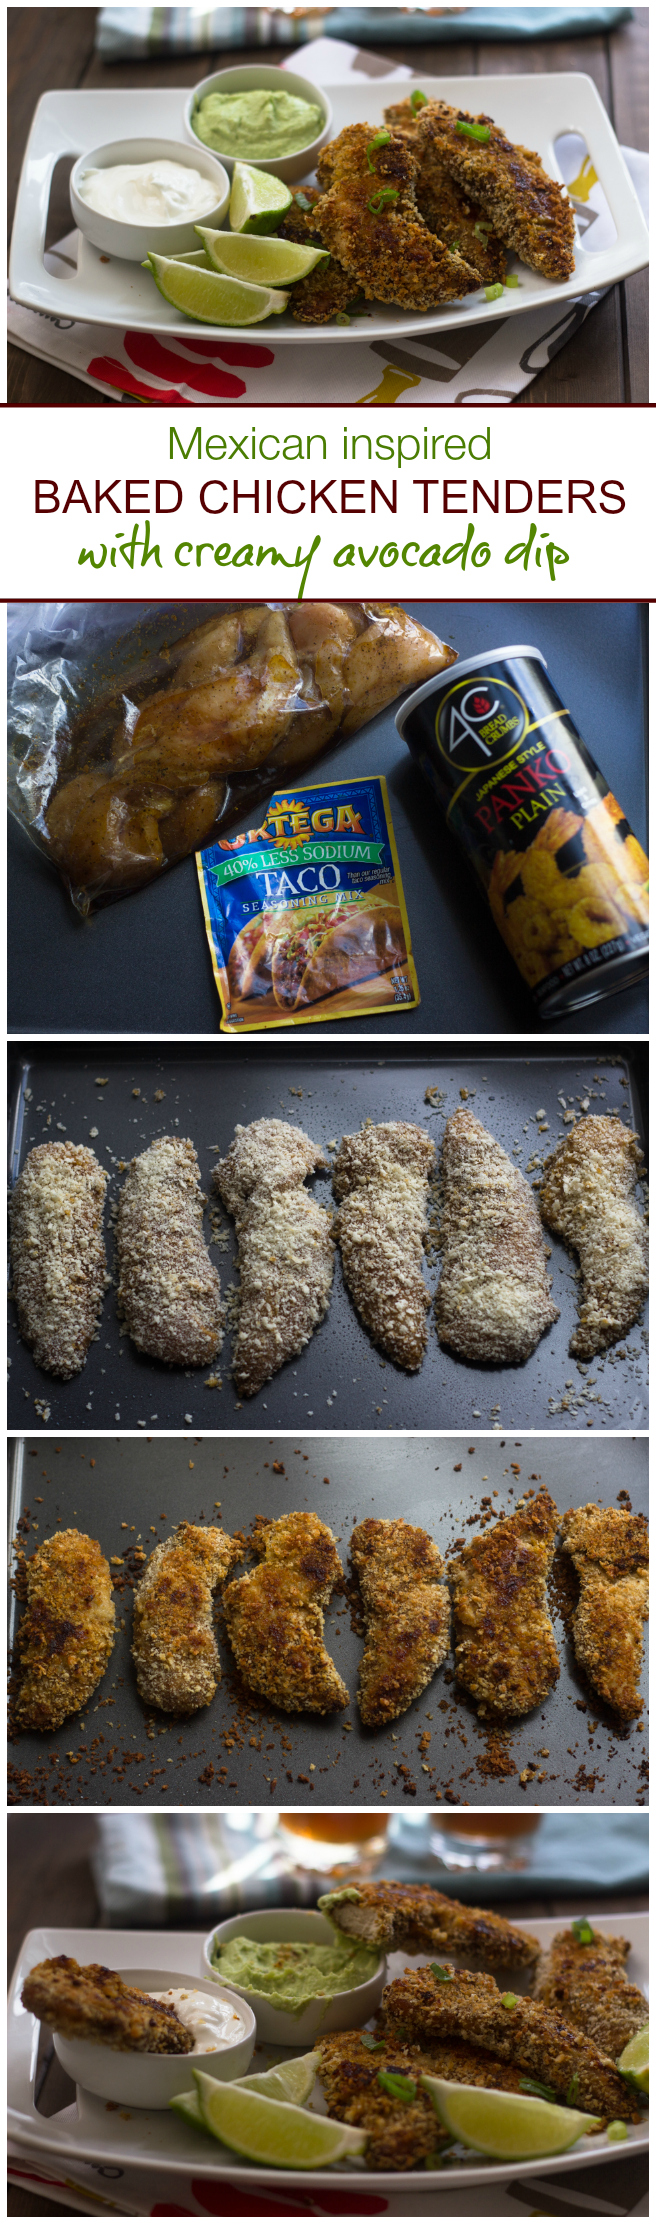 Mexican Inspired Baked Chicken Tenders with Creamy Avocado Dip